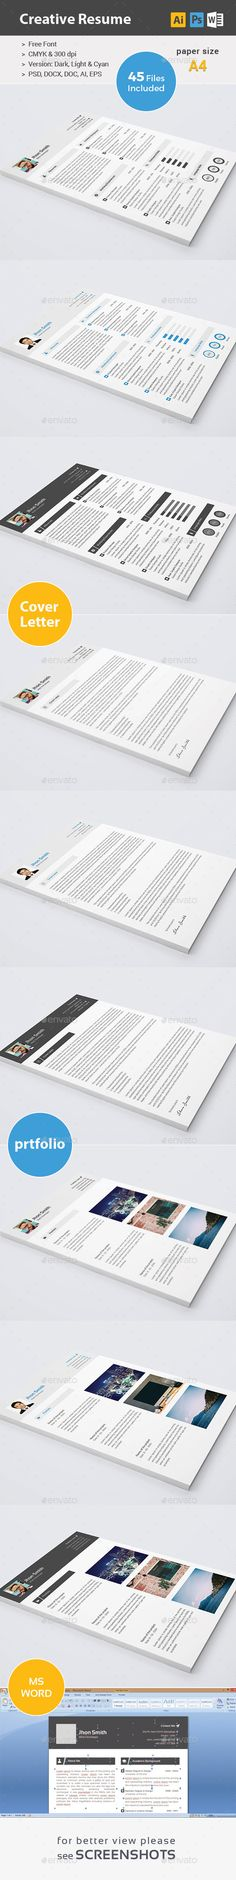 Resume - 01 by envalab This Products includes: Resume.psd Resume.docx Resume.doc Resume.ai Resume.eps Cover_Letter.psd Cover_Letter.doc